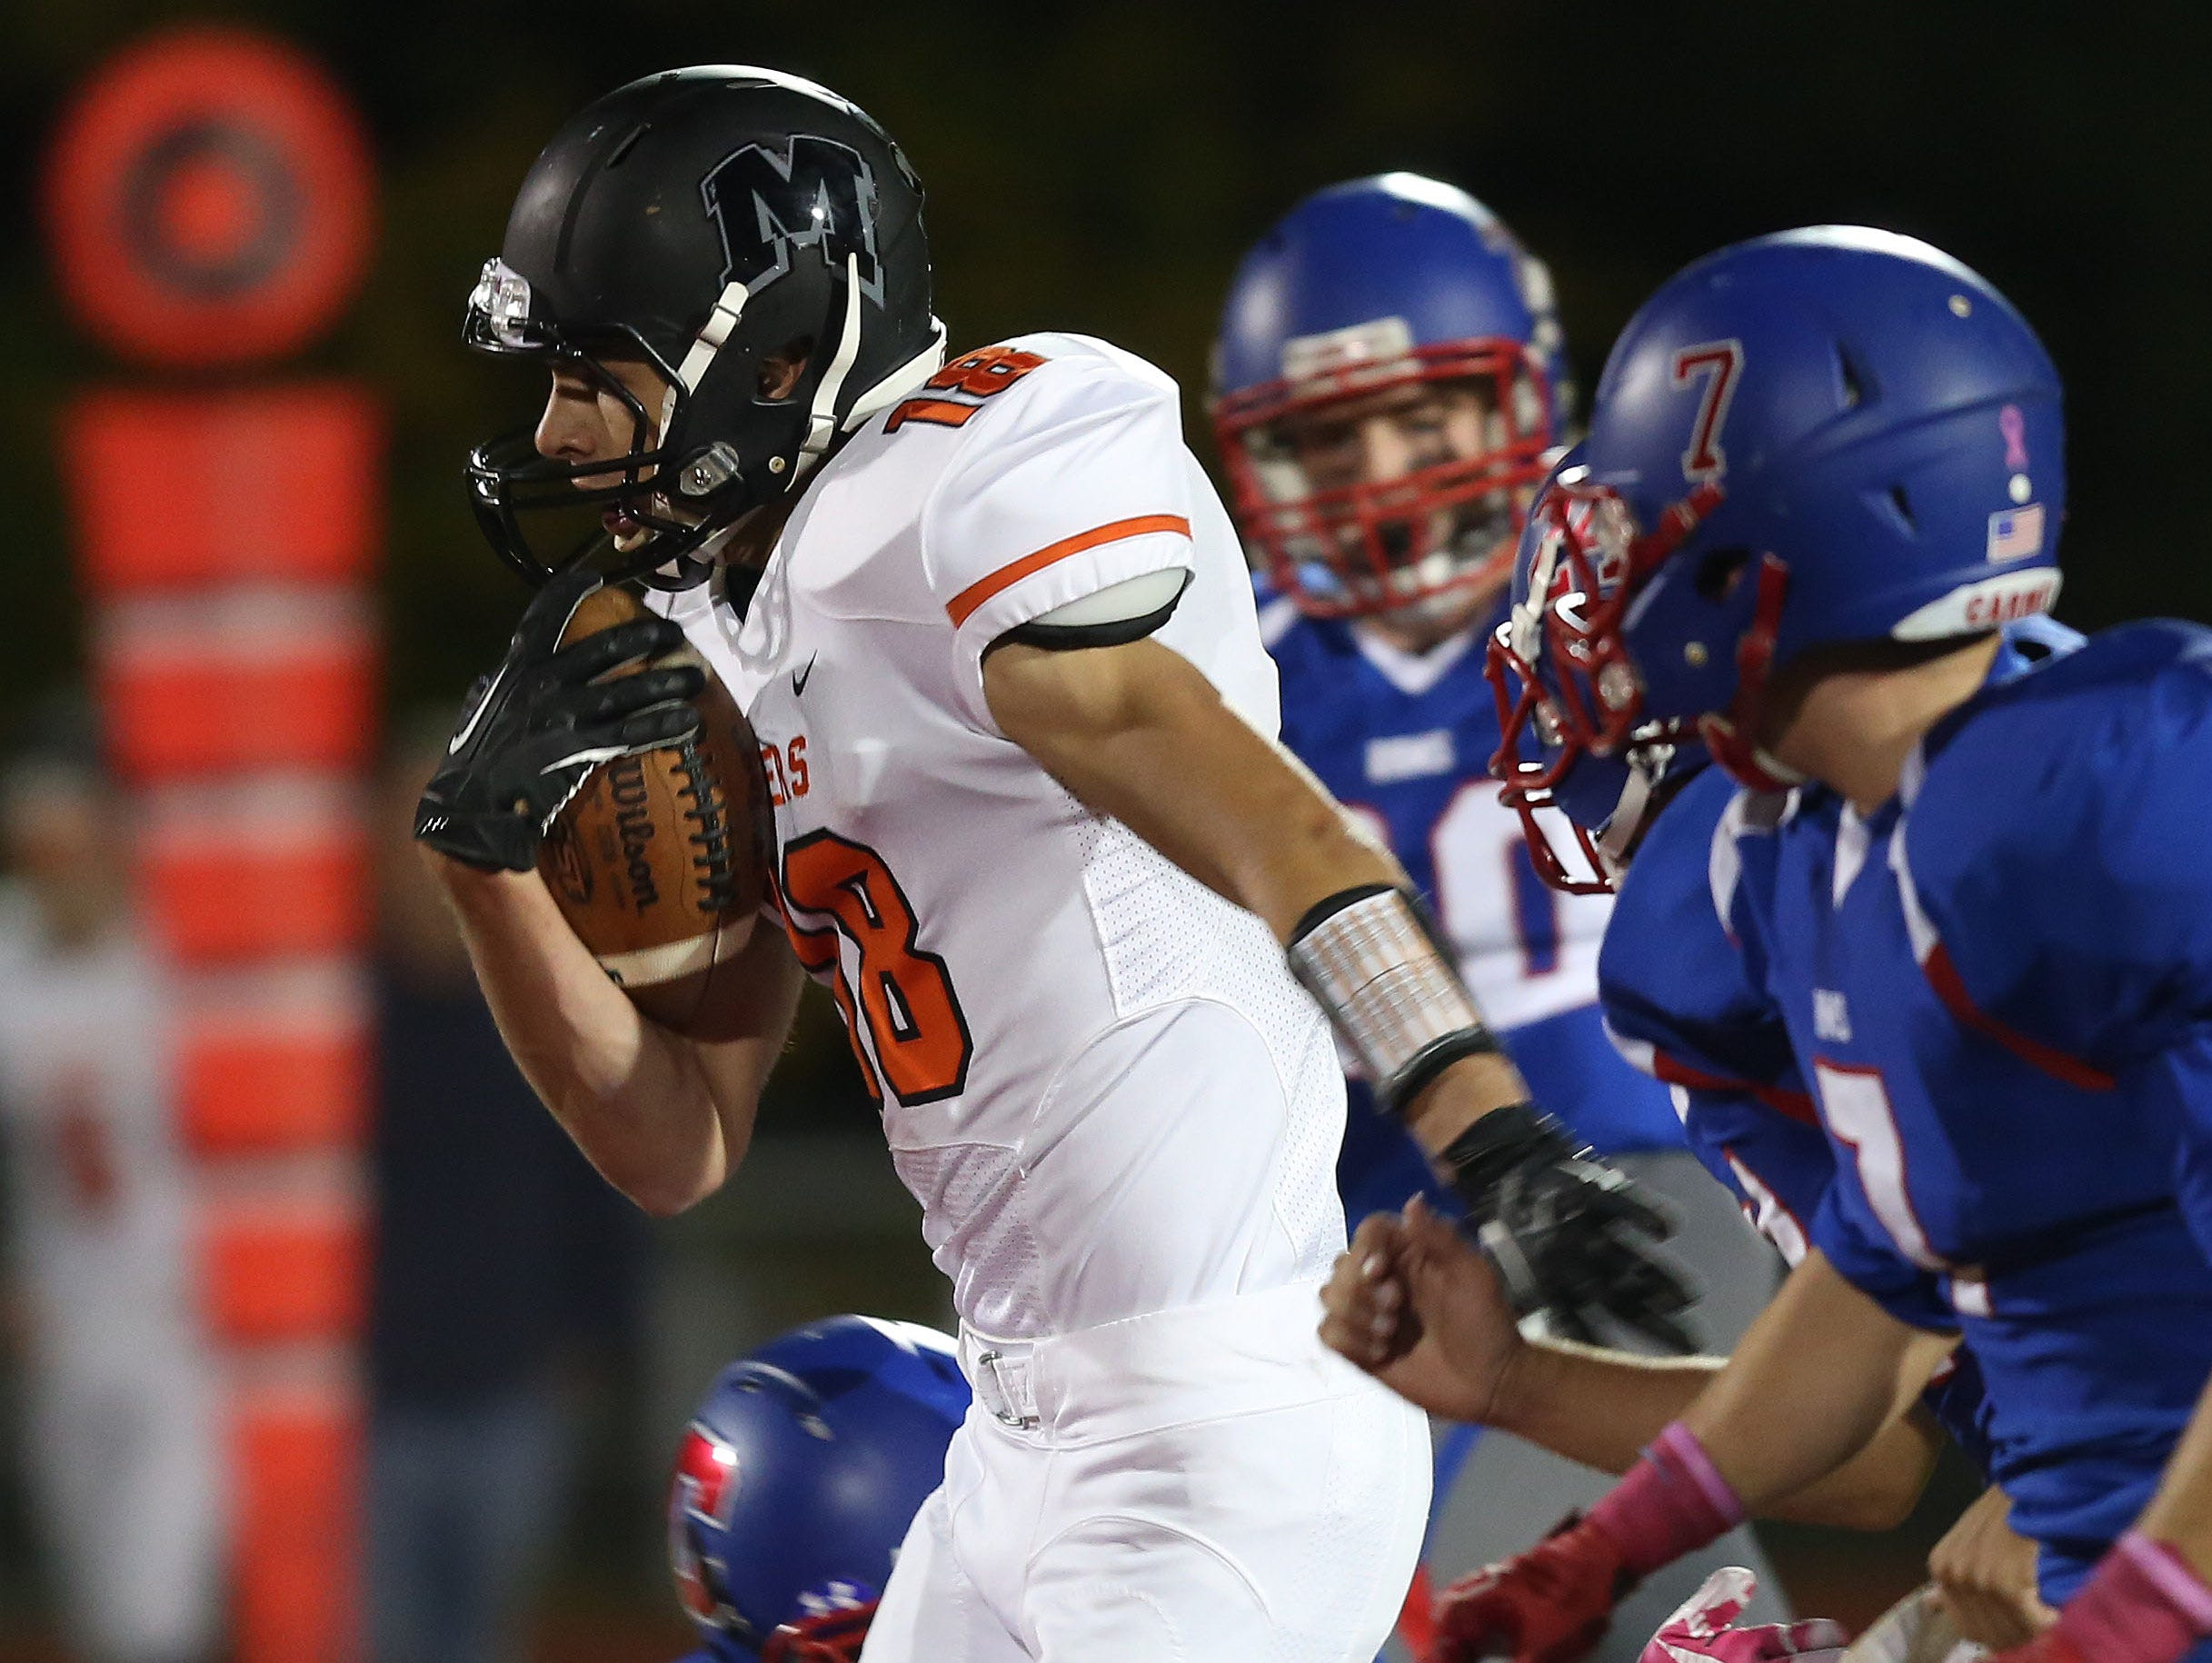 Mamaroneck's Jason Valastro (18) finds some running room in the Carmel defense on a first half run during a boys football playoff game at Carmel High School Oct. 16, 2015.